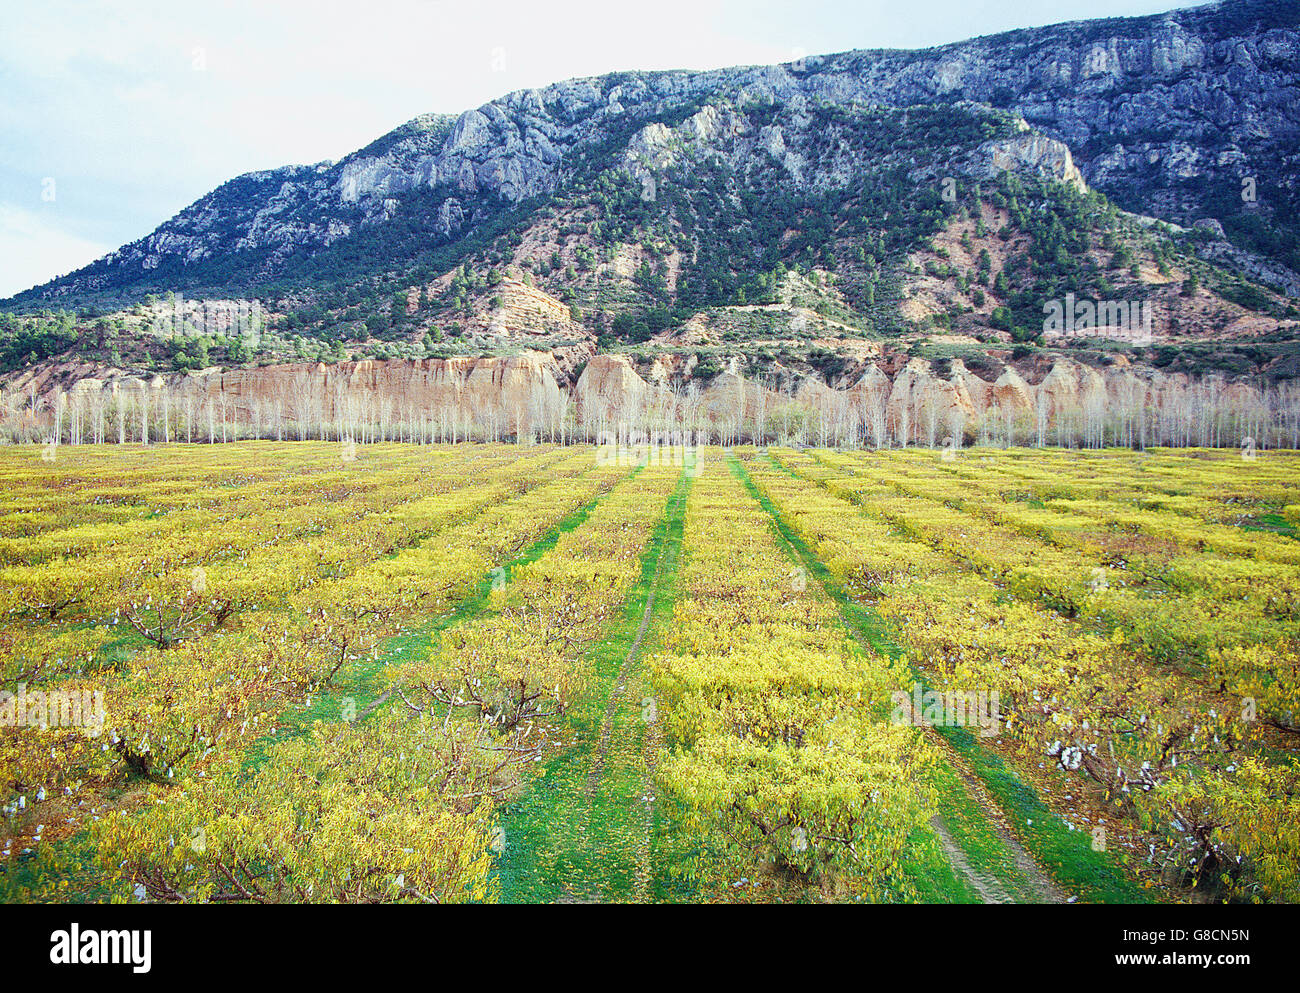 Fruit trees and canyon of river Martin. River Martin Cultural Park, Sierra de Arcos, Teruel province, Aragon, Spain. - Stock Image